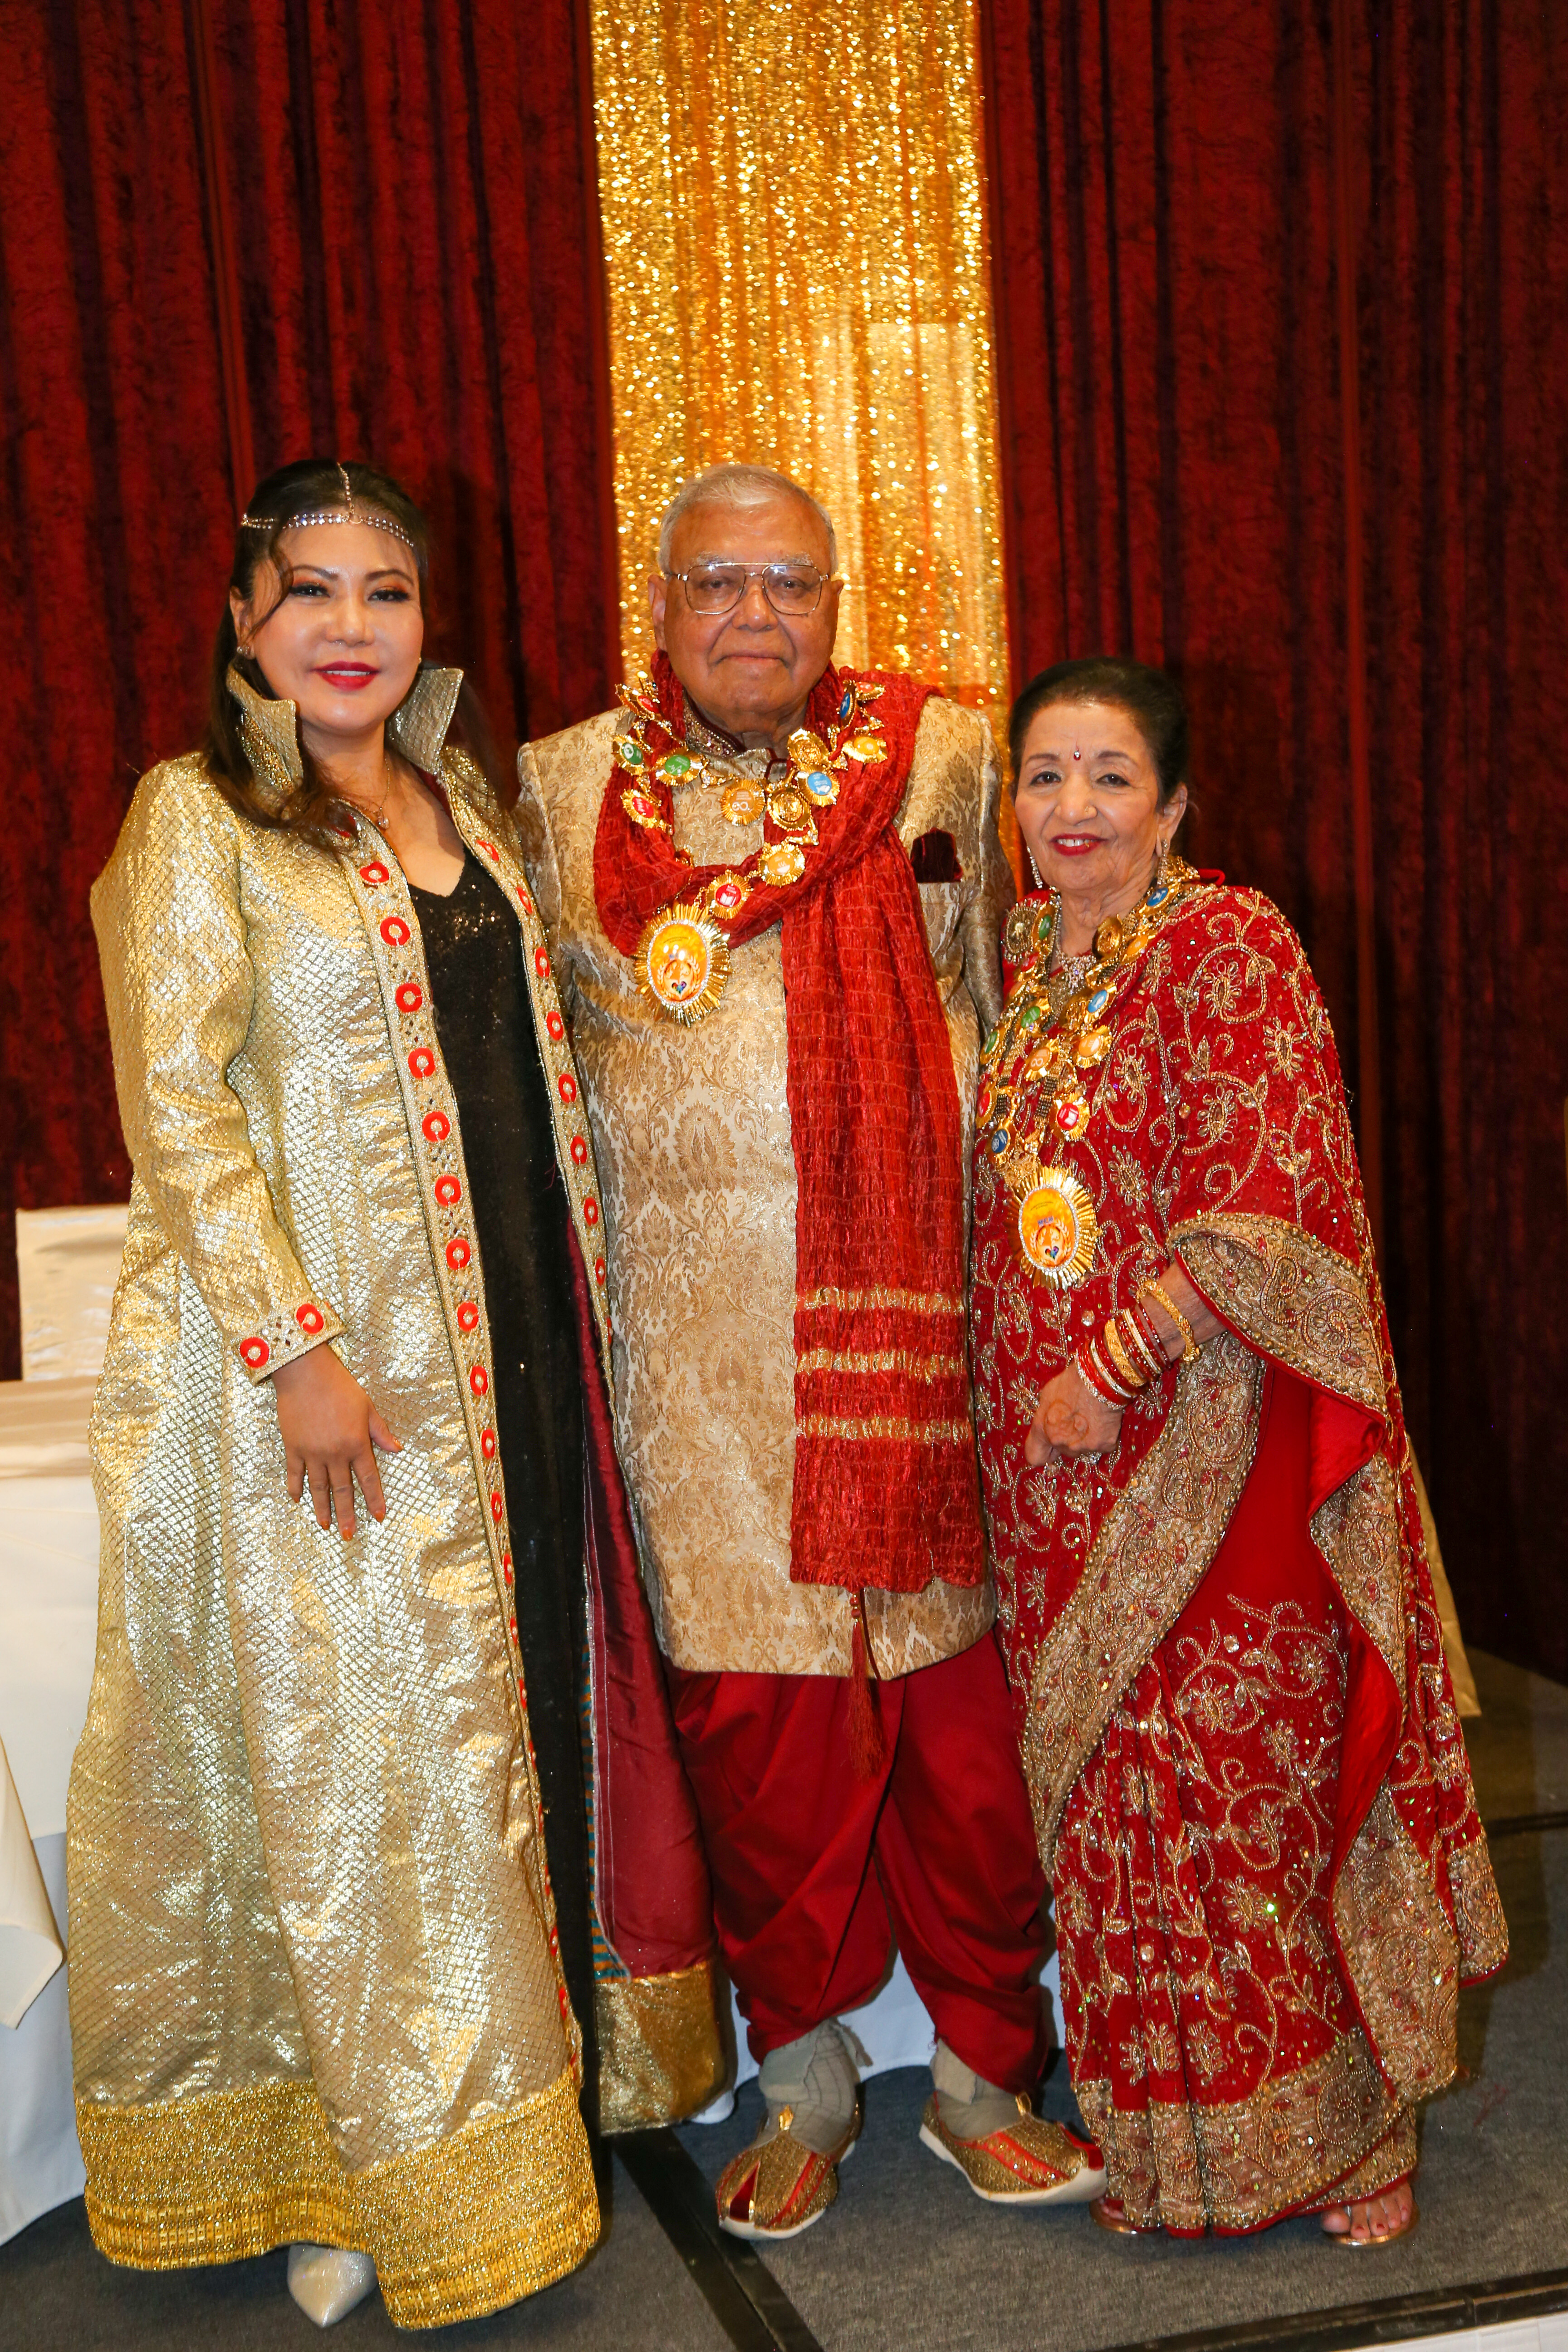 G.O.D. AWARDS HONOREE, USHA SHAH CELEBRATES 80th BIRTHDAY